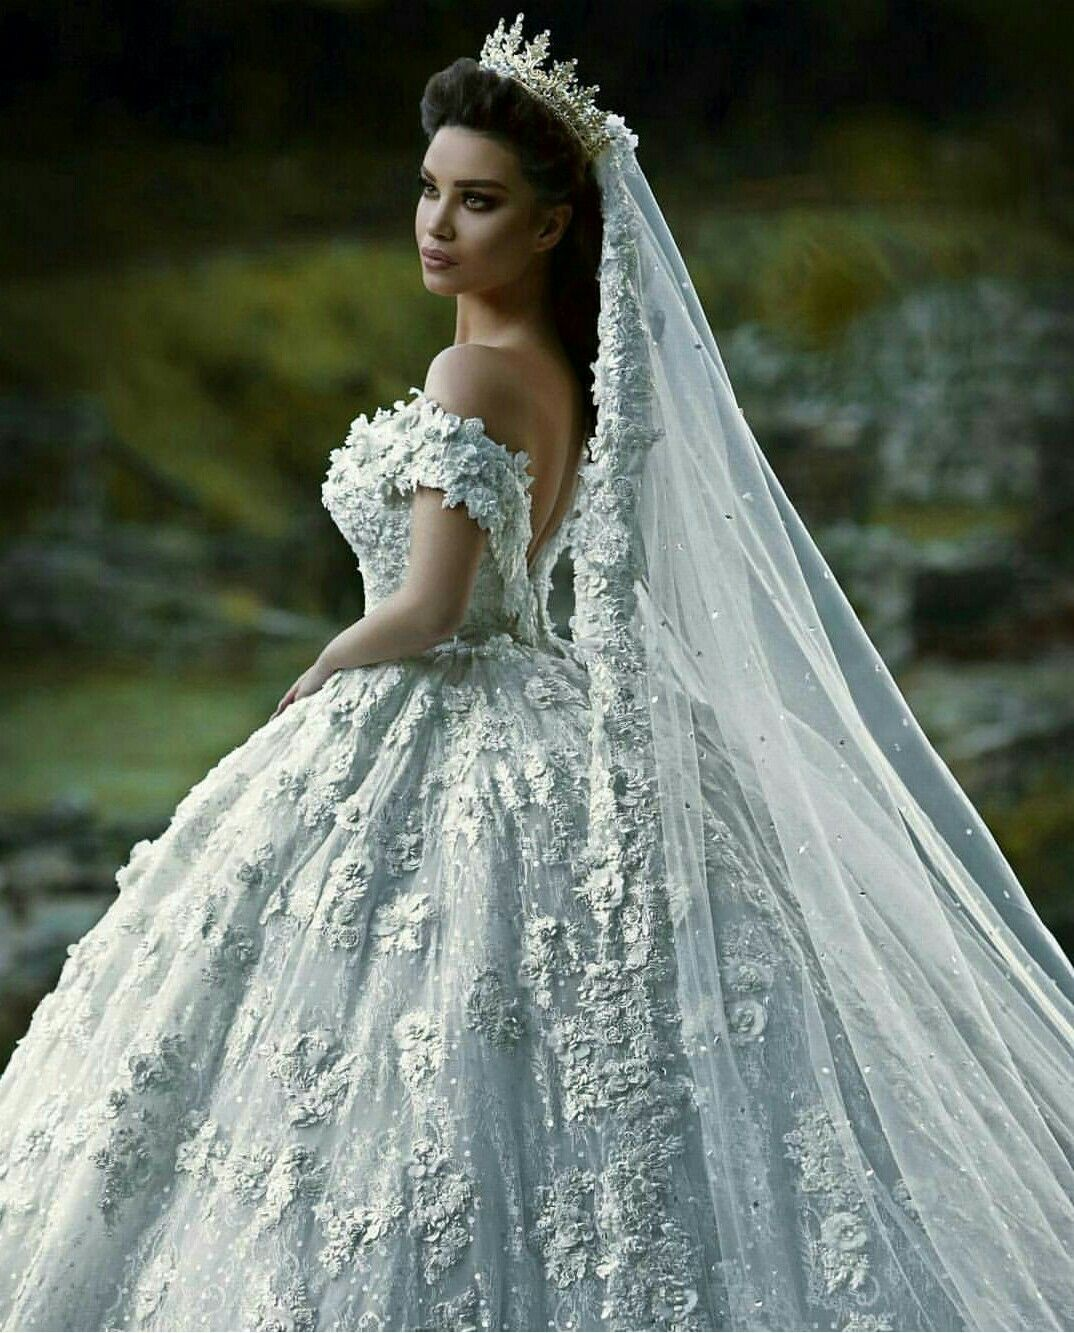 Pin de Windy Mazie en Bridal gowns | Pinterest | Vestiditos, Novios ...